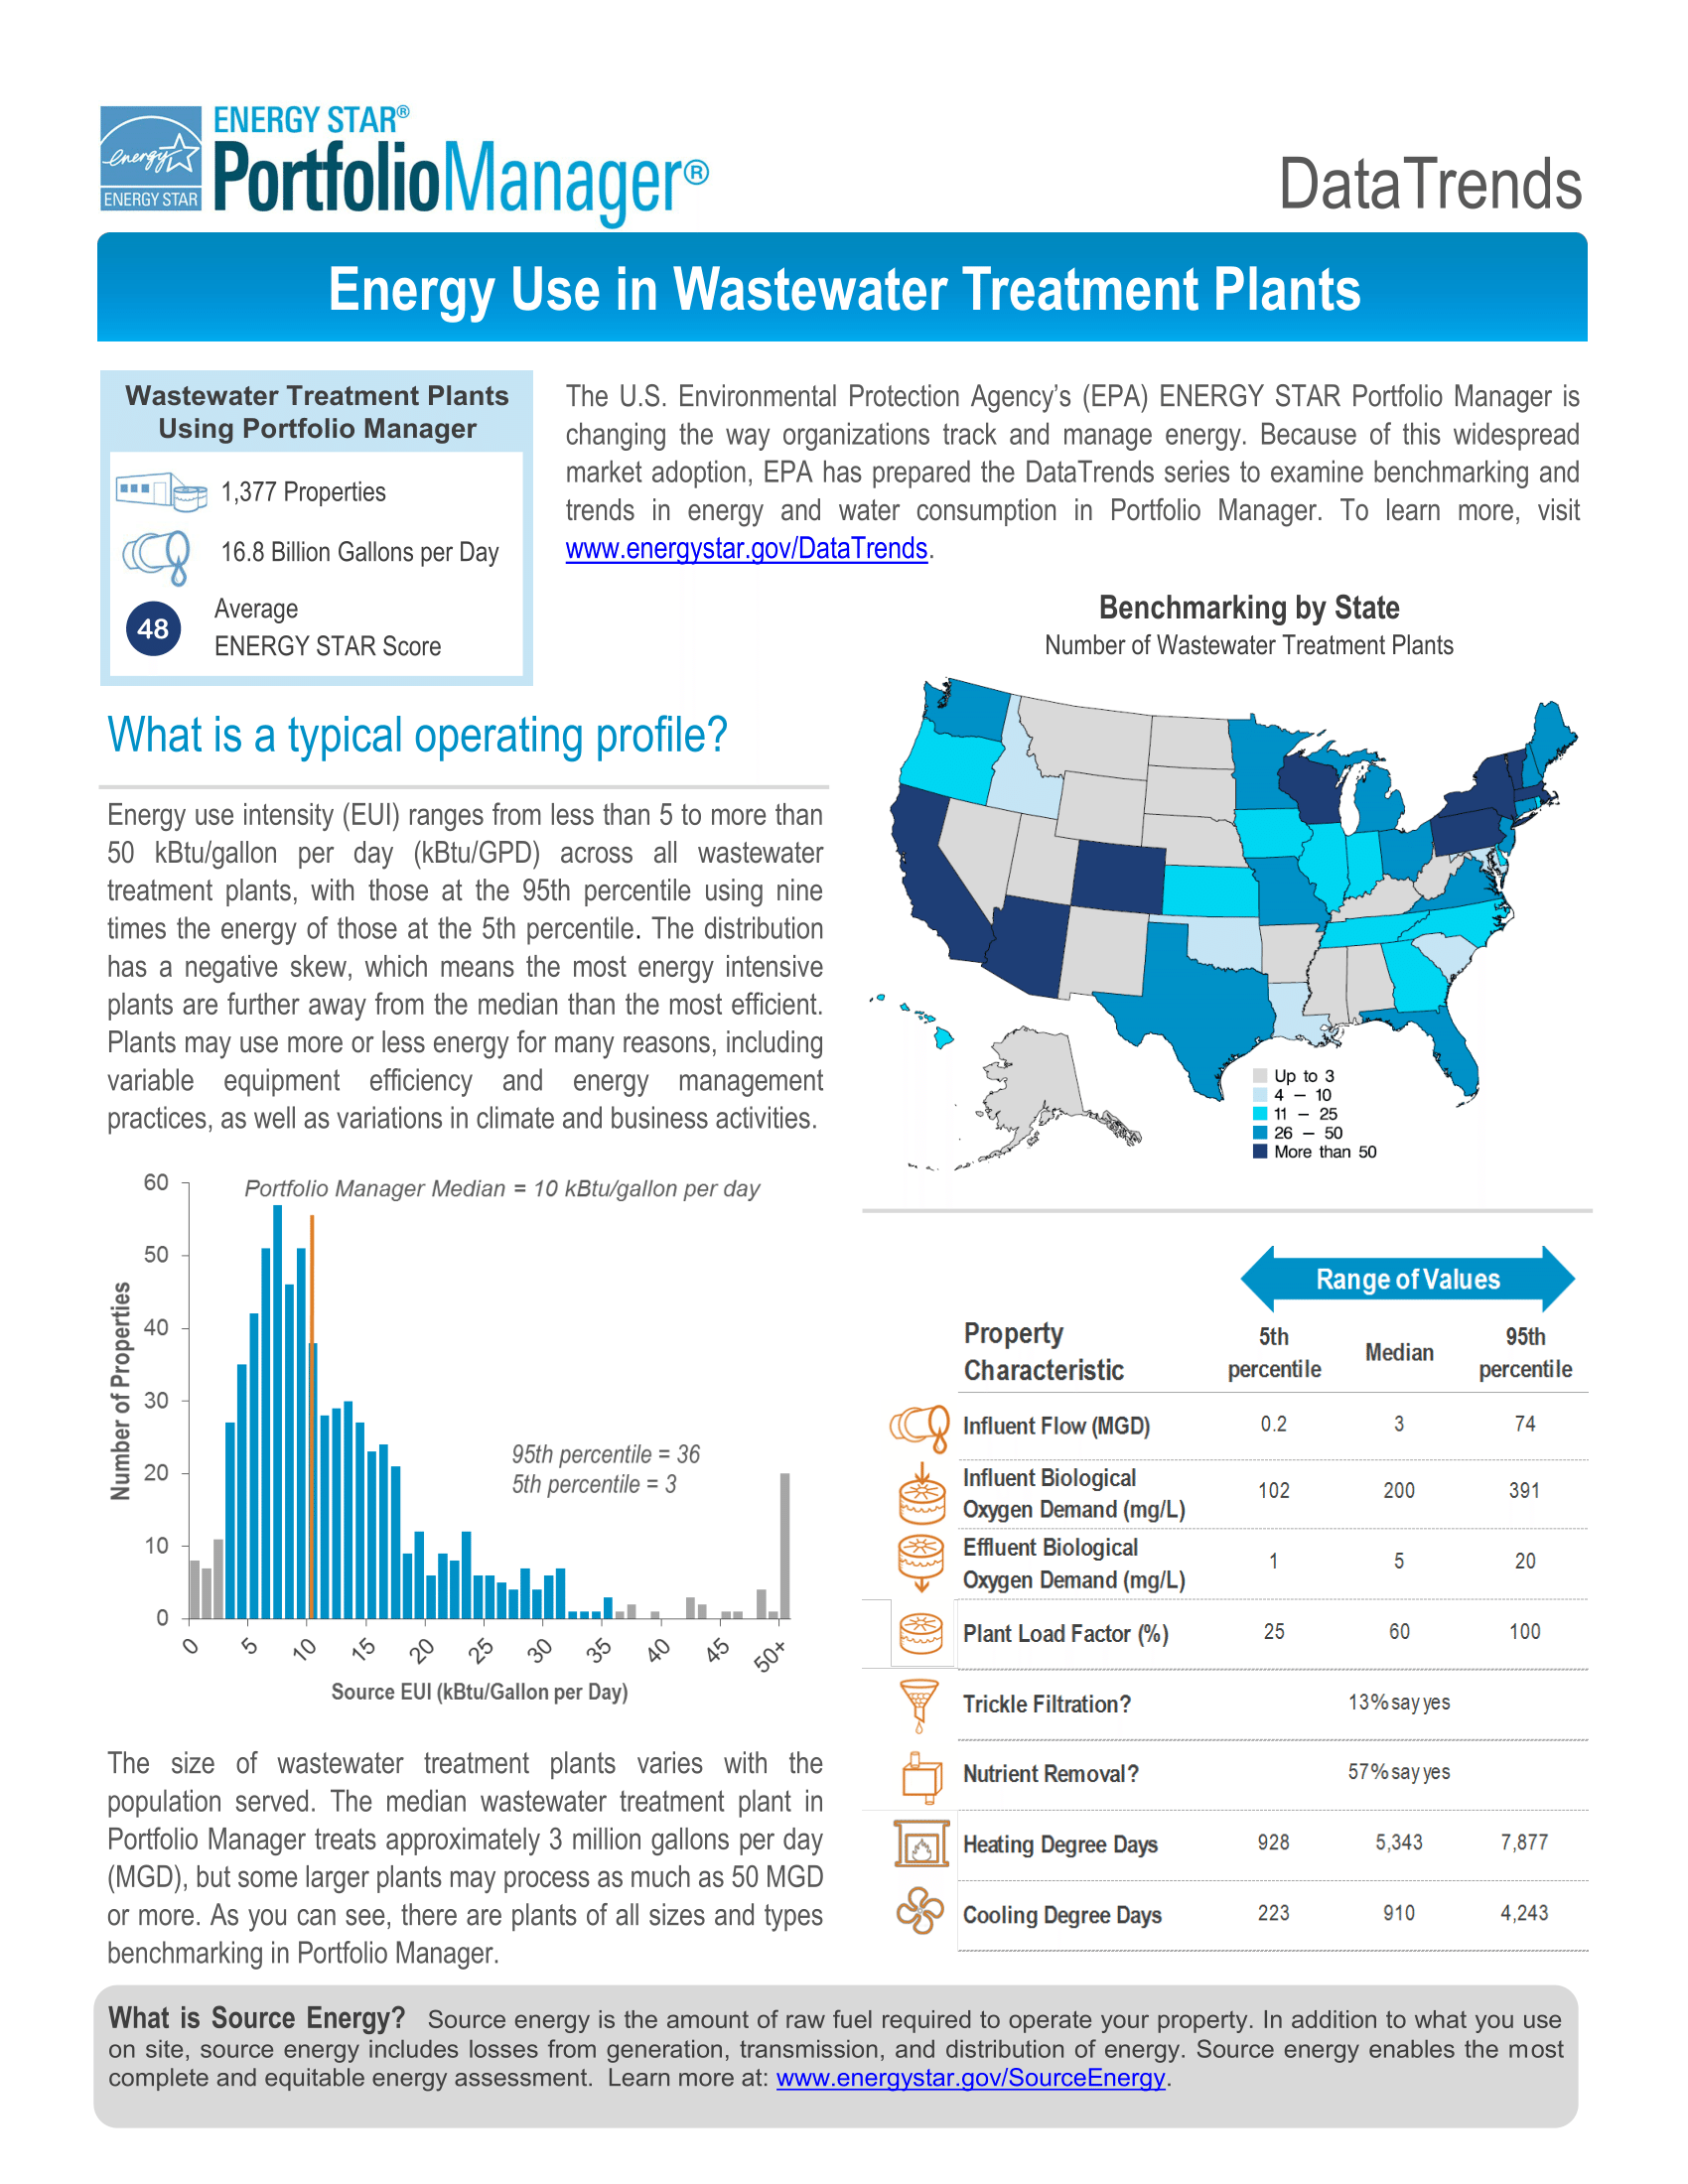 DataTrends: Energy Use in Wastewater Treatment Plants